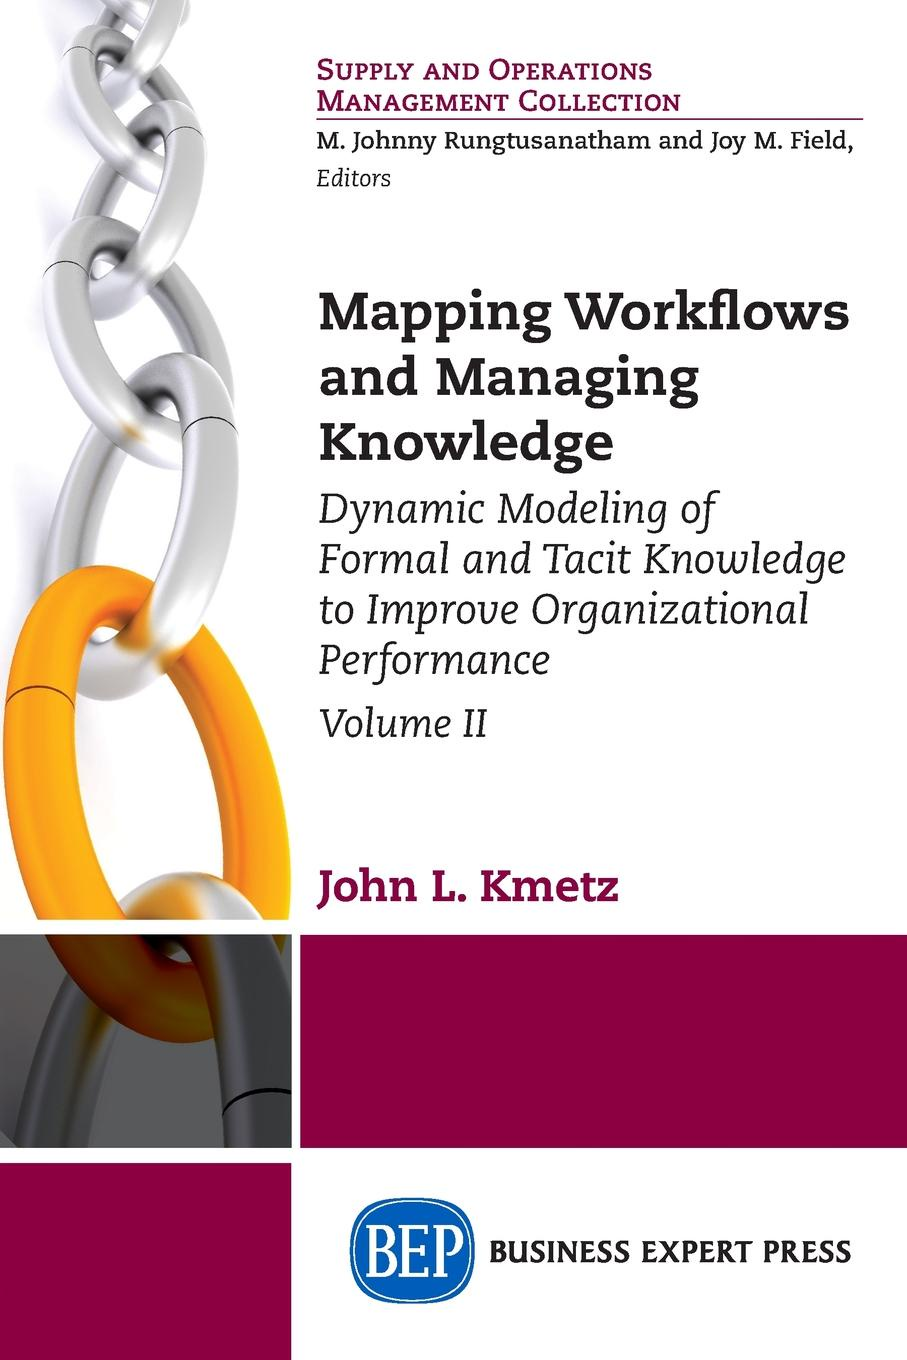 John L. Kmetz Mapping Workflows and Managing Knowledge. Dynamic Modeling of Formal and Tacit Knowledge to Improve Organizational Performance, Volume II gregory levitin dynamic system reliability modeling and analysis of dynamic and dependent behaviors